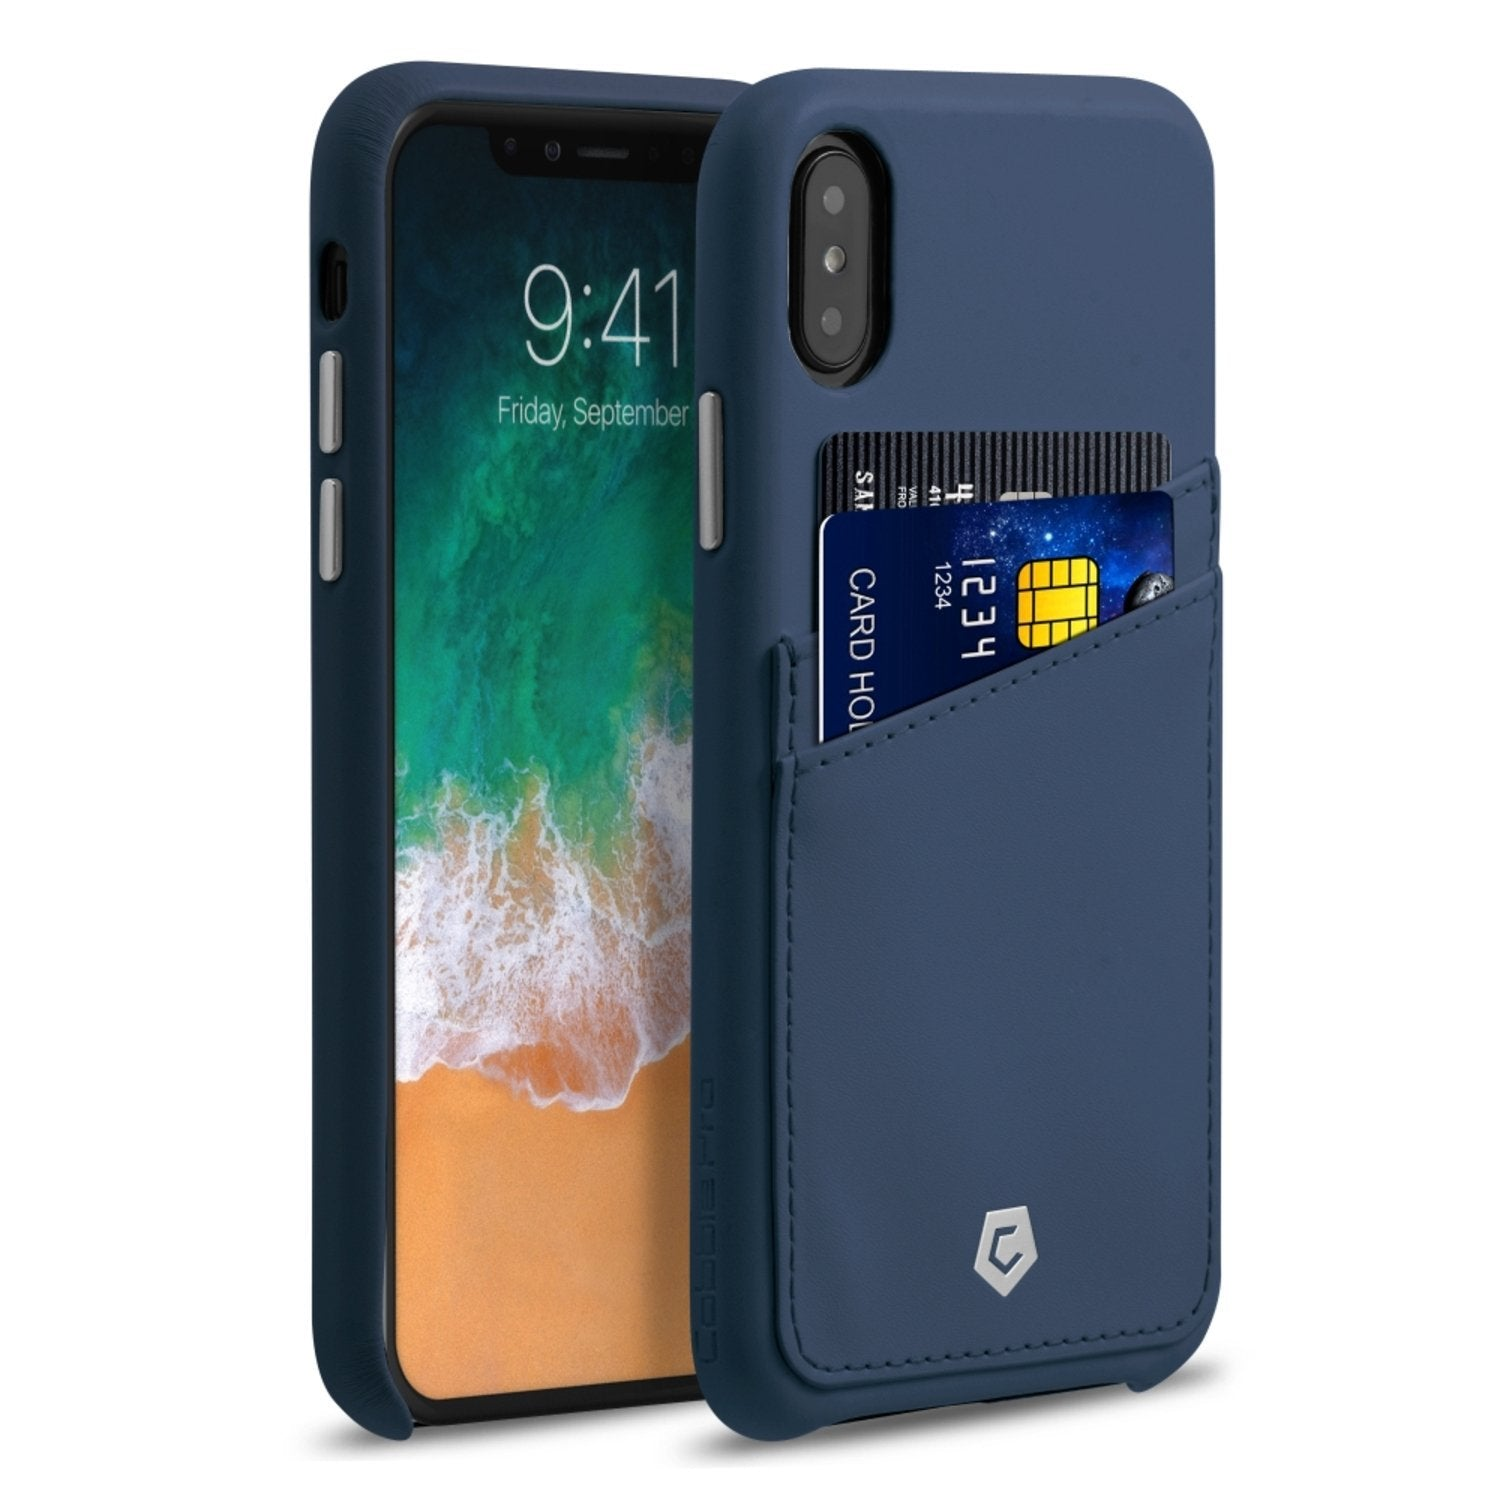 reputable site 02e6b fd751 Dark Blue Leather Textured Back Cover Case for iPhone X/XS